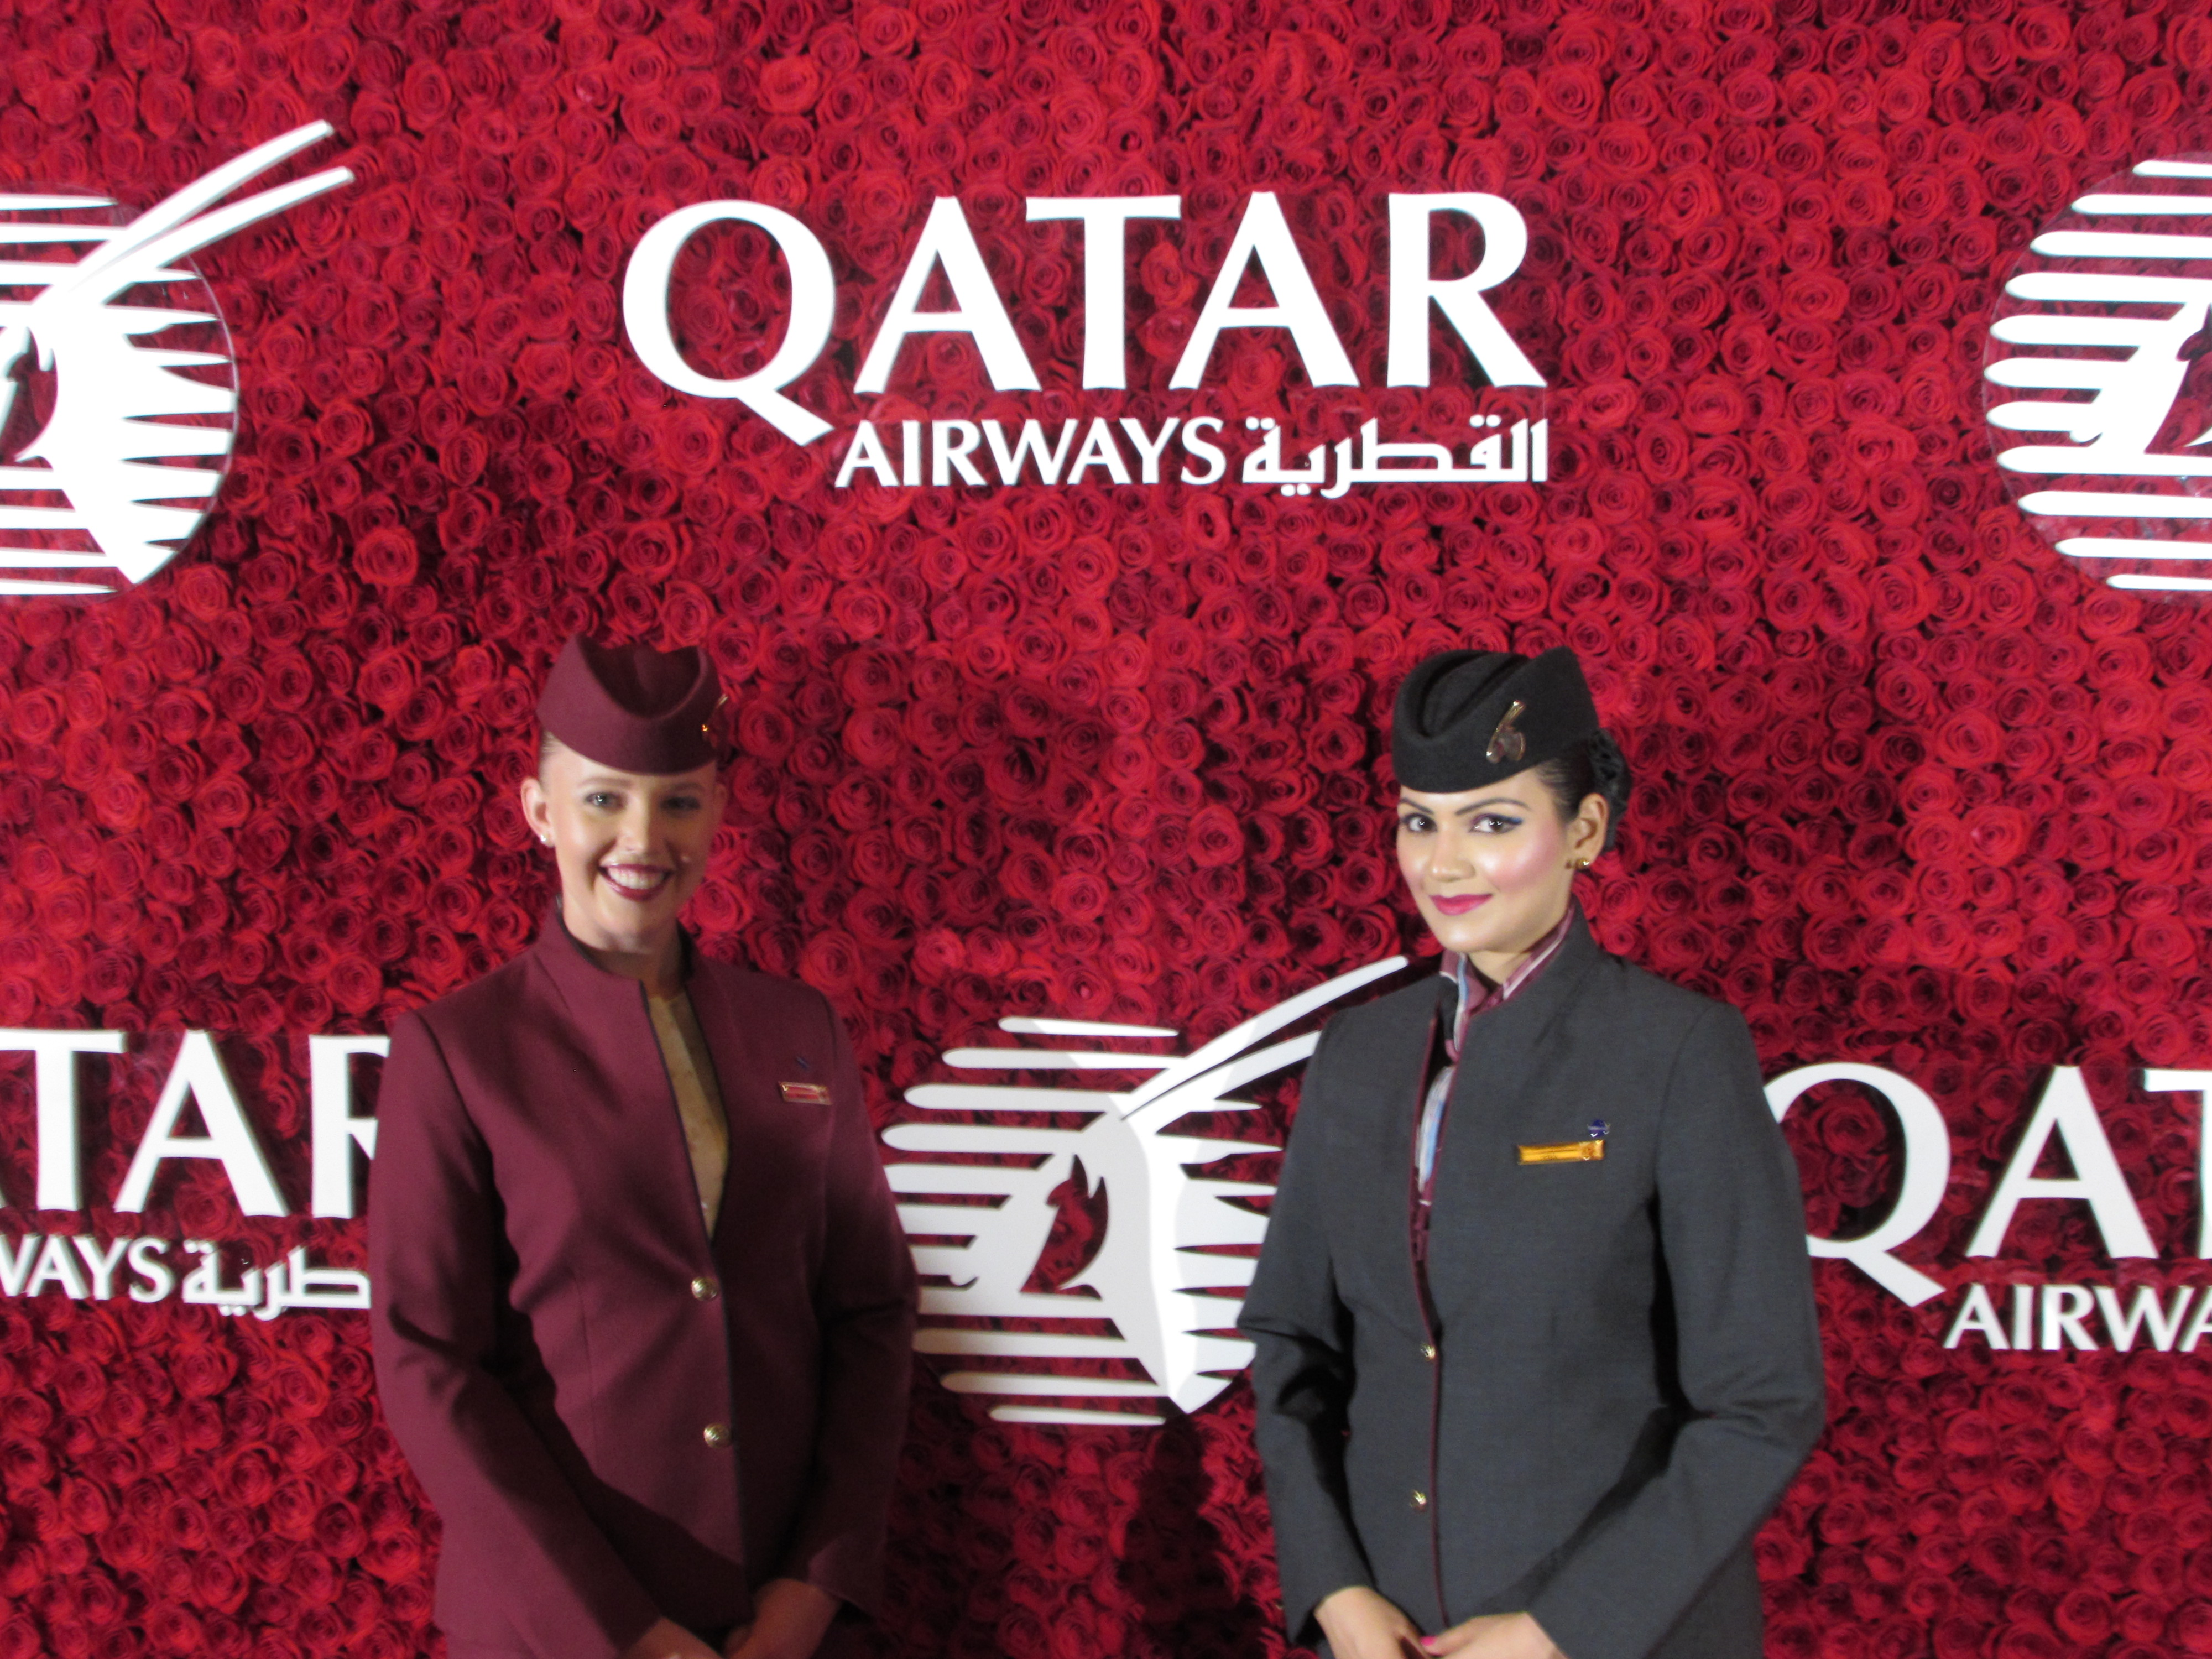 Air France Flight Attendant Cover Letter Qatar Airways To Start U S Hiring Push In Atlanta Despite Labor